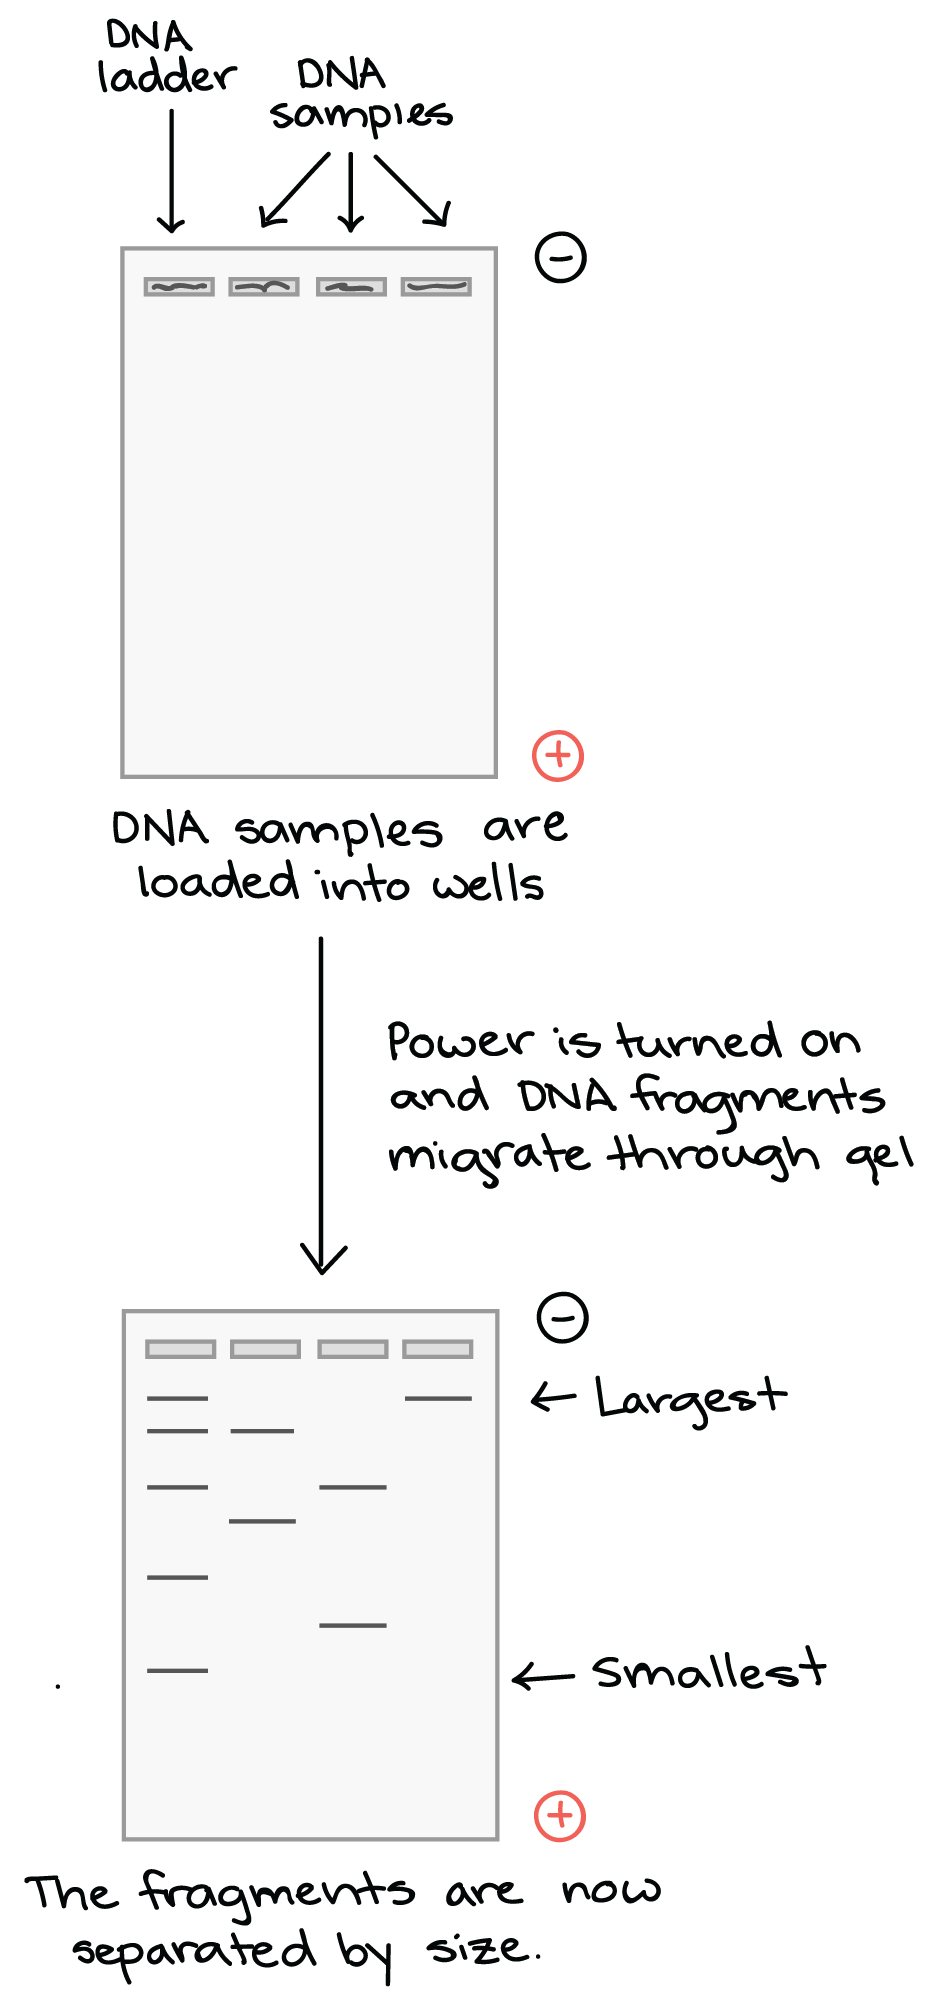 DNA samples are loaded into wells at negative electrode end of gel.  Power is turned on and DNA fragments migrate through gel (towards the positive electrode).  After the gel has run, the fragments are separated by size. The largest fragments are near the top of the gel (negative electrode, where they began), and the smallest fragments are near the bottom (positive electrode).